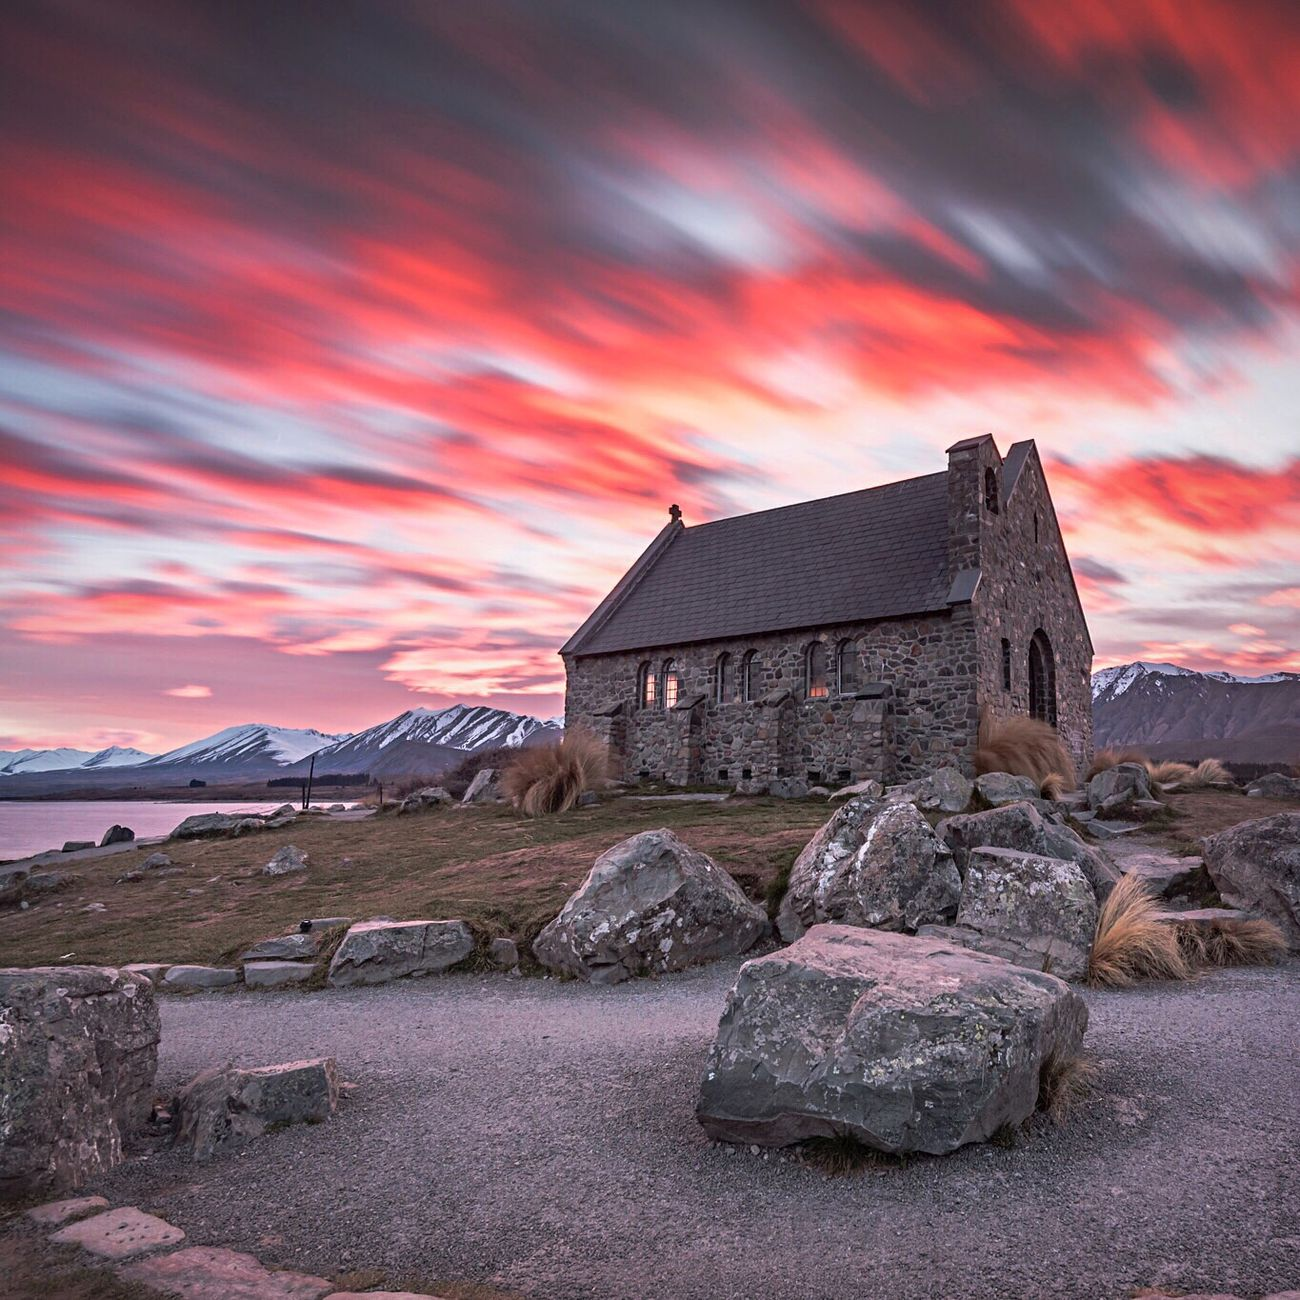 The big guy was smiling at The Church of the Good Shepherd in Tekapo this morning! My Year My View EyeEm Best Shots - Sunsets + Sunrise Tadaa Community Popular Photos New Zealand Scenery Cloudporn Nature On Your Doorstep Ladyphotographerofthemonth Eye4photography  Exceptional Photographs Sky_collection EyeEm Masterclass For My Friends That Connect Amazing_captures Shootermag Church Buildings My Sky Obsession... Eyem Best Shots Sunrise N Sunsets Worldwide  Showcase August 2016 EyeEm Gallery Bestoftheday #contestgram #instamood #dailyphoto #primeshots #ig_captures #clouds #sky #cloud #blueskys #sunshine #cloudporn #skyporn #skysnappers #nature #blue #light #skylovers #skystyles_gf #cloudy #iloveclouds #cloudscape On The Way